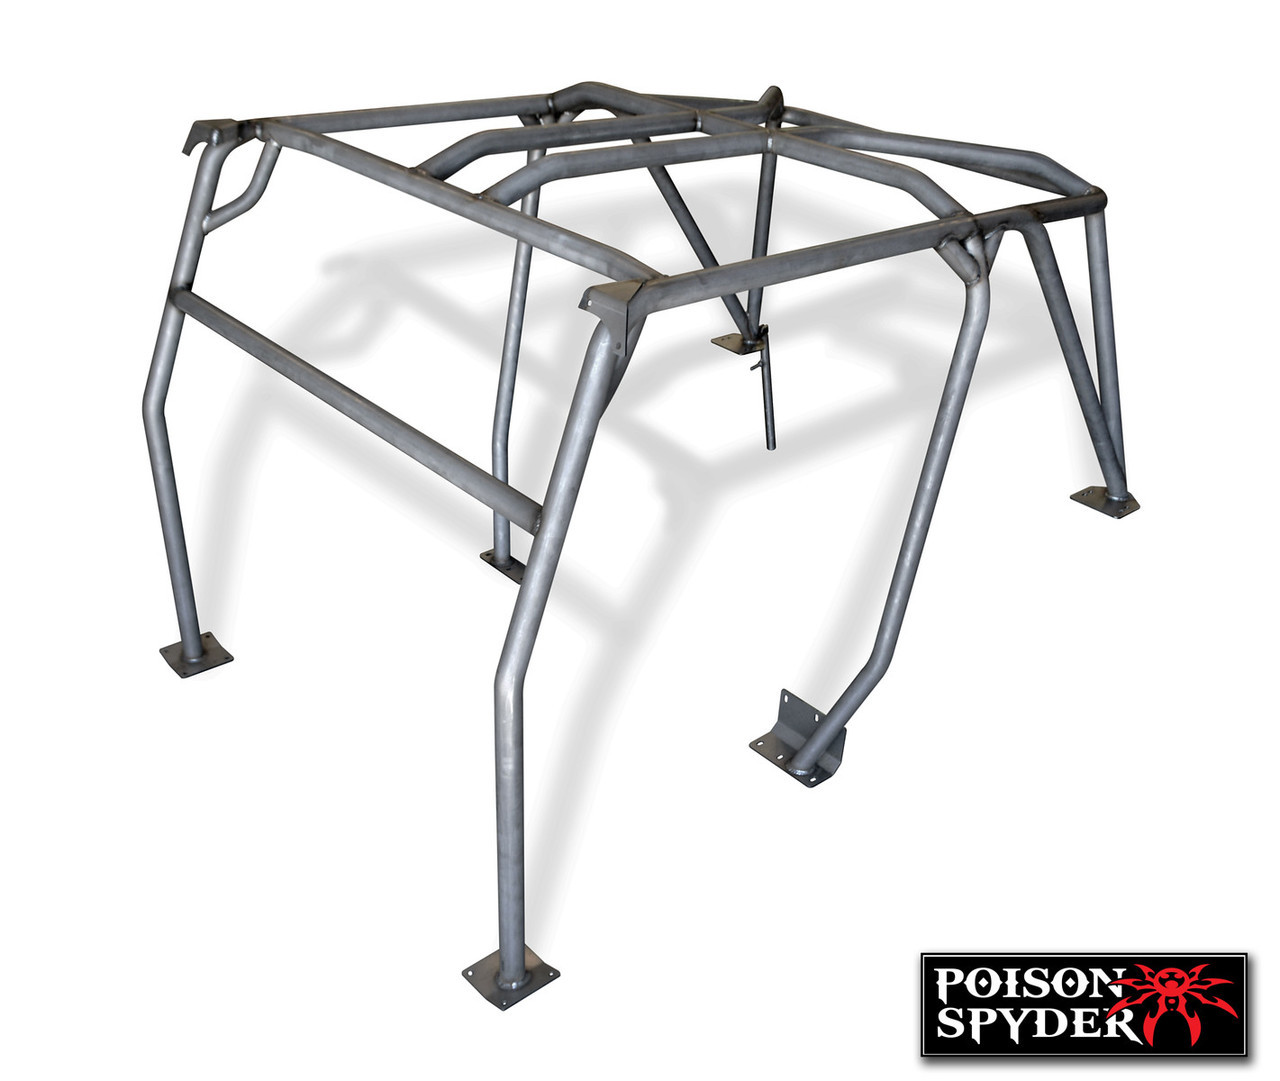 Full Roll Cage Kit | Poison Spyder Lazer - Fit Cage | YJ / CJ-7